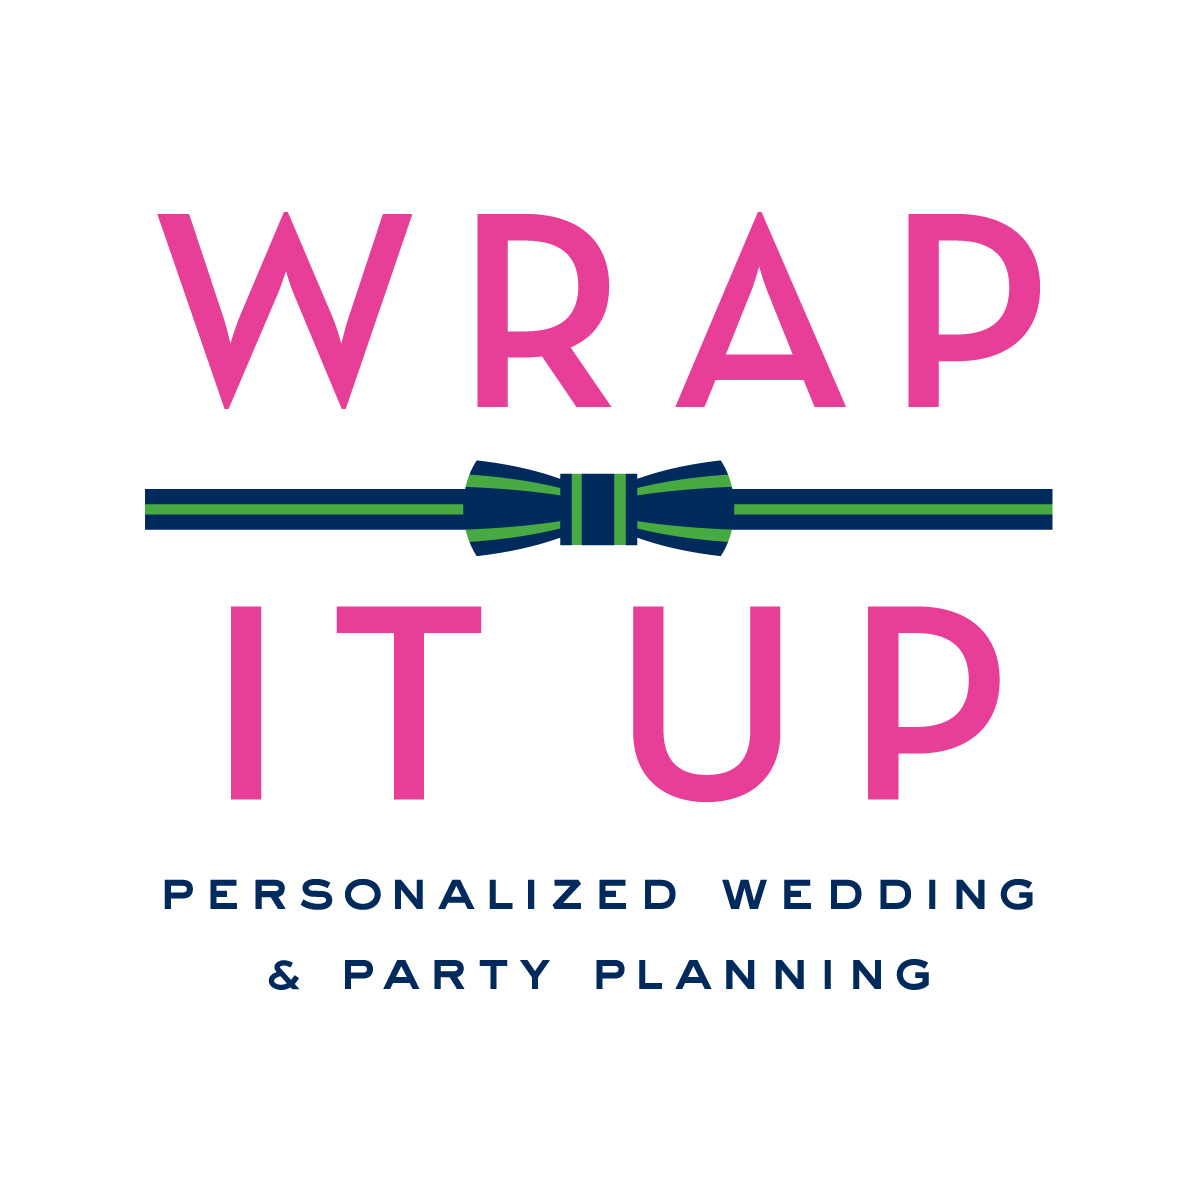 Rustic Glam Wedding at Bridgeport - Wrap It Up Parties